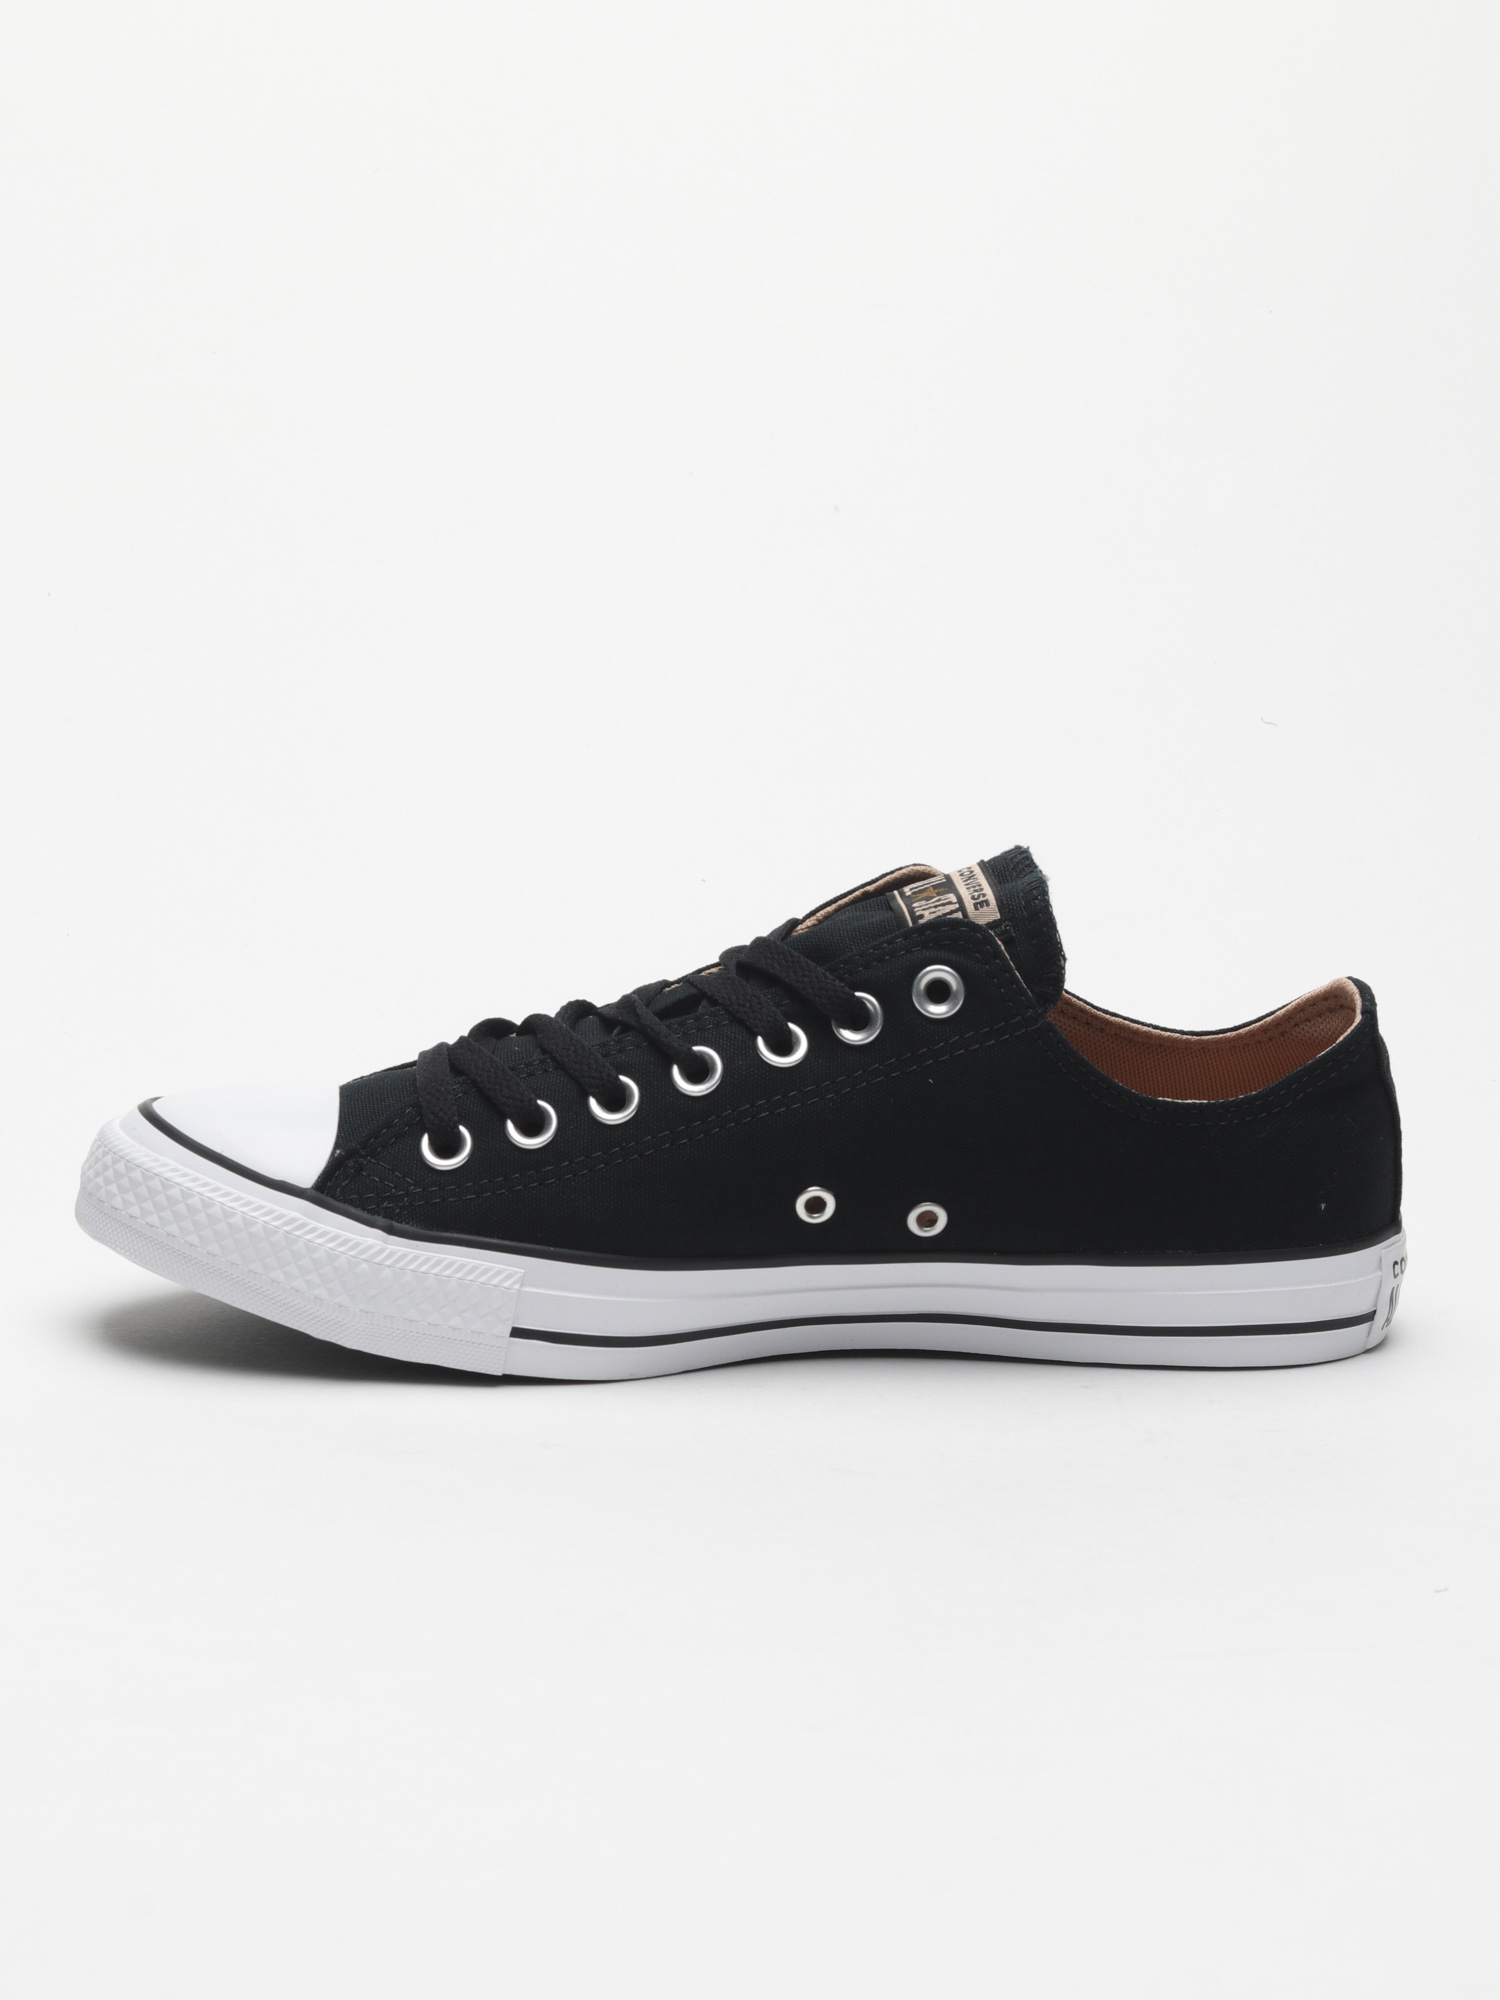 Boty Converse Chuck Taylor All Star Canvas Wordmark (2)